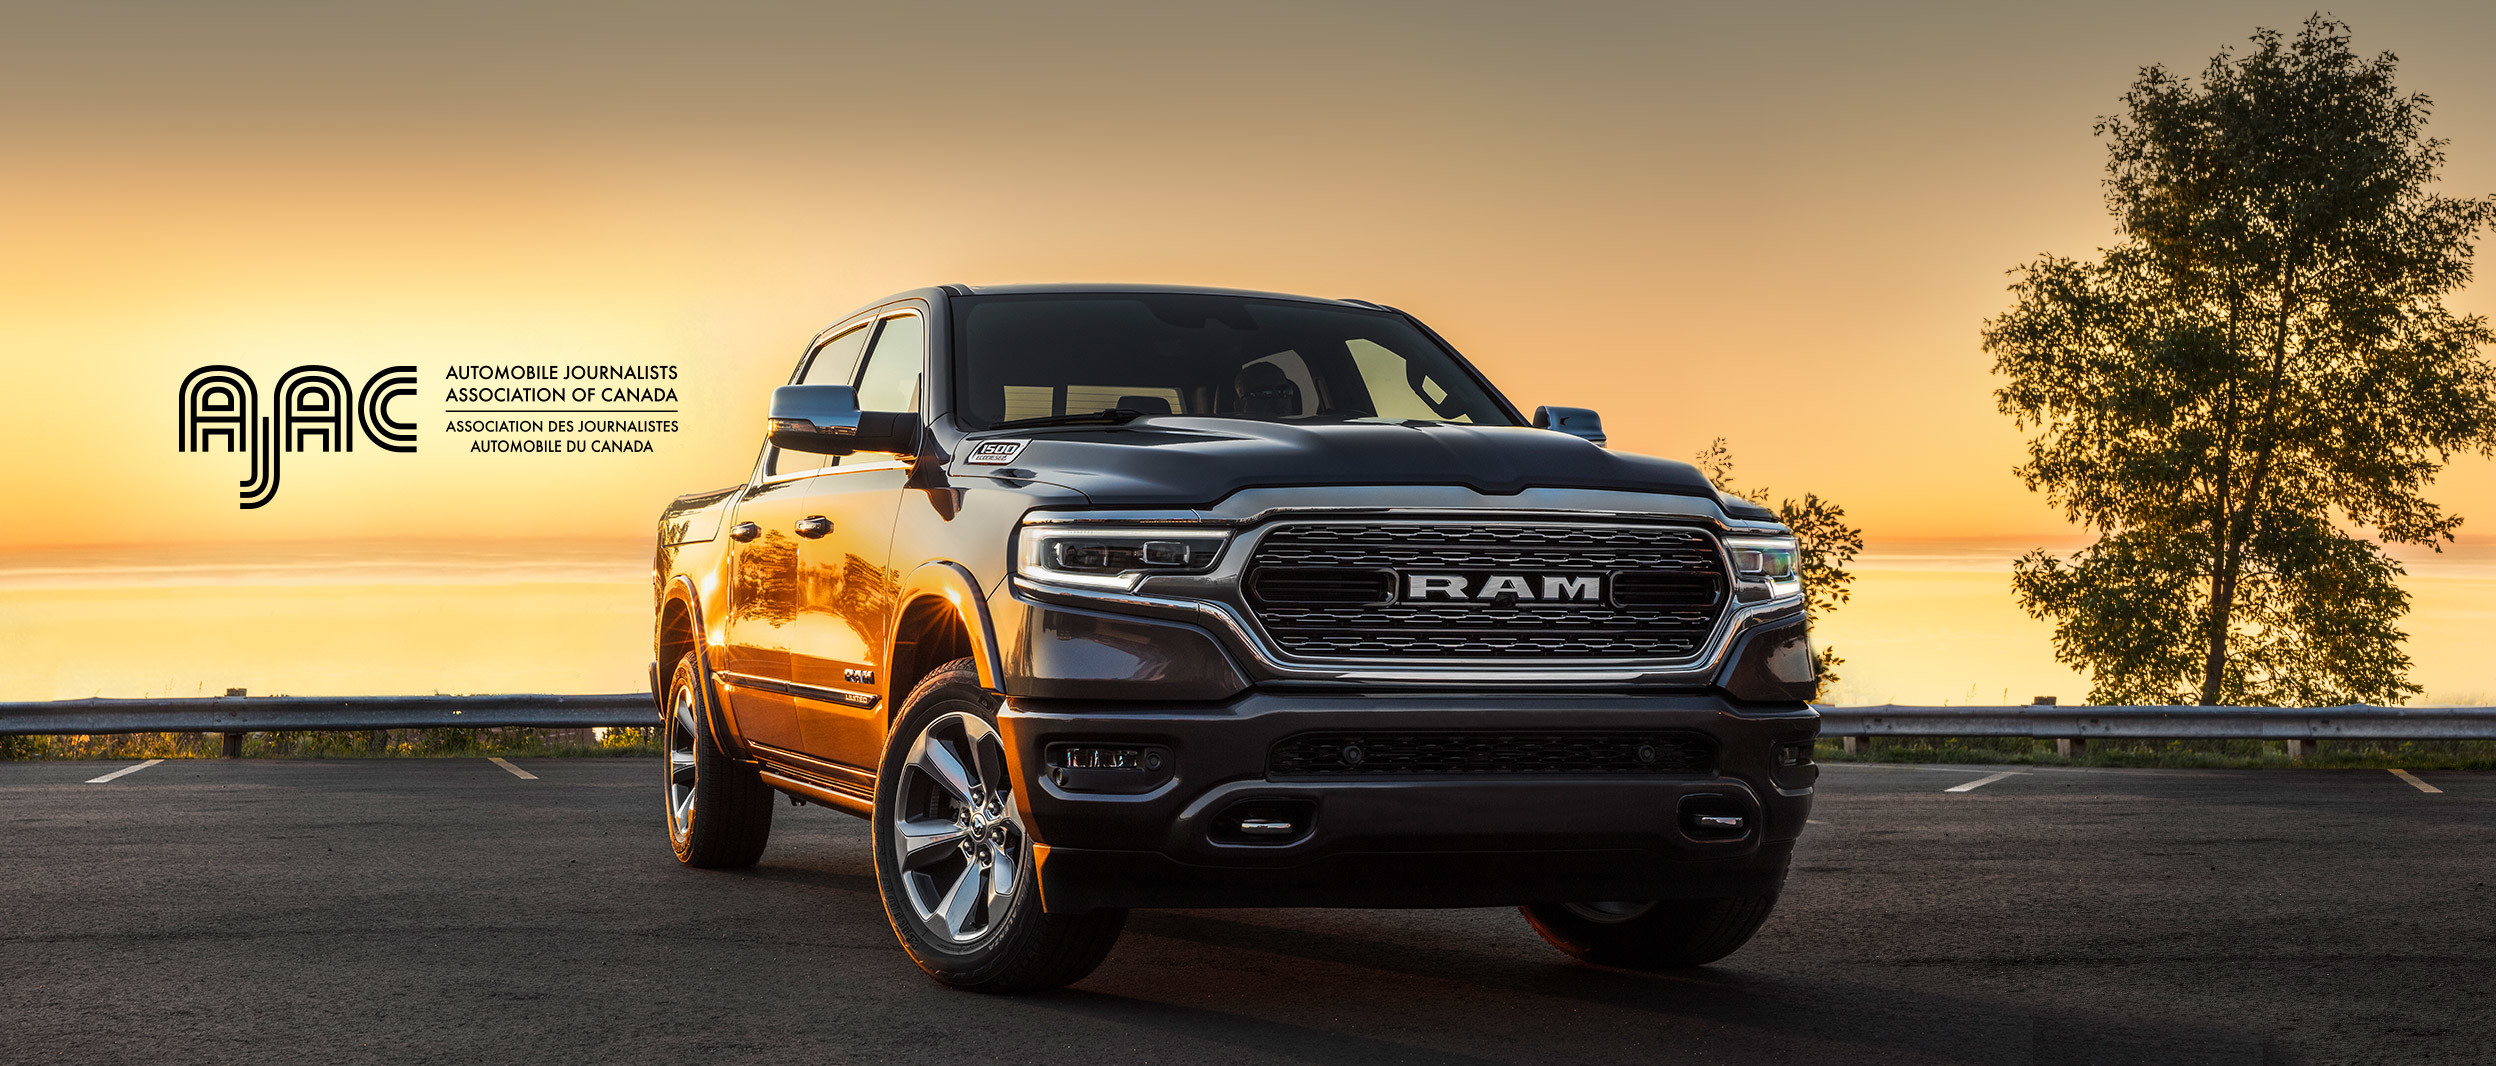 Front view of the 2020 Ram 1500 in black parked in front of the lake at sunset with the AJAC logo on top.